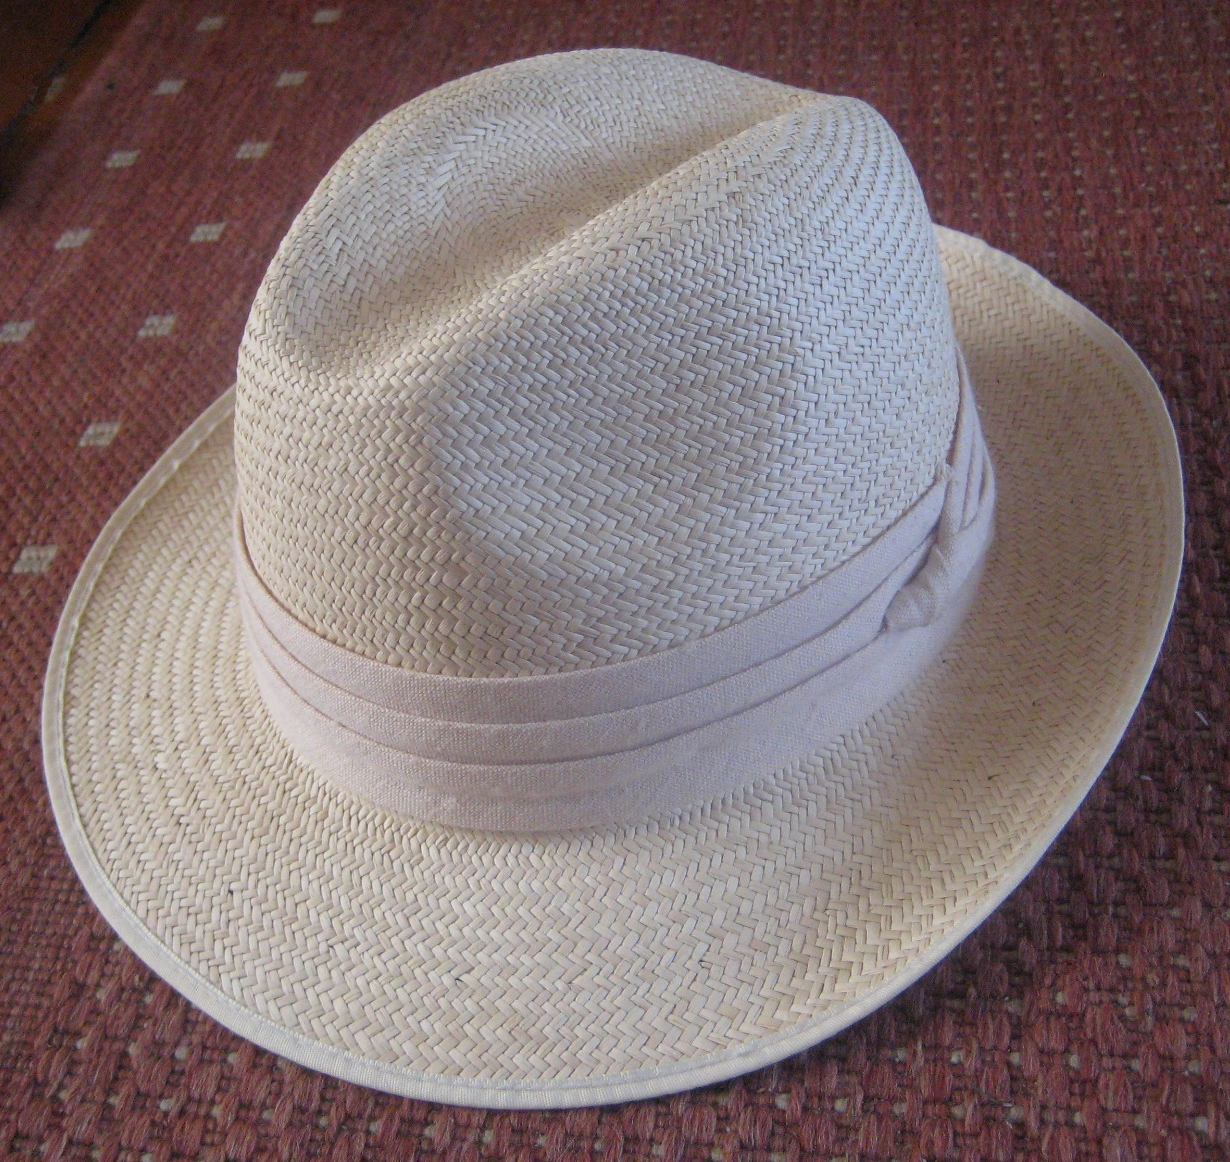 Difference between Panama Hats and Fedora Hats